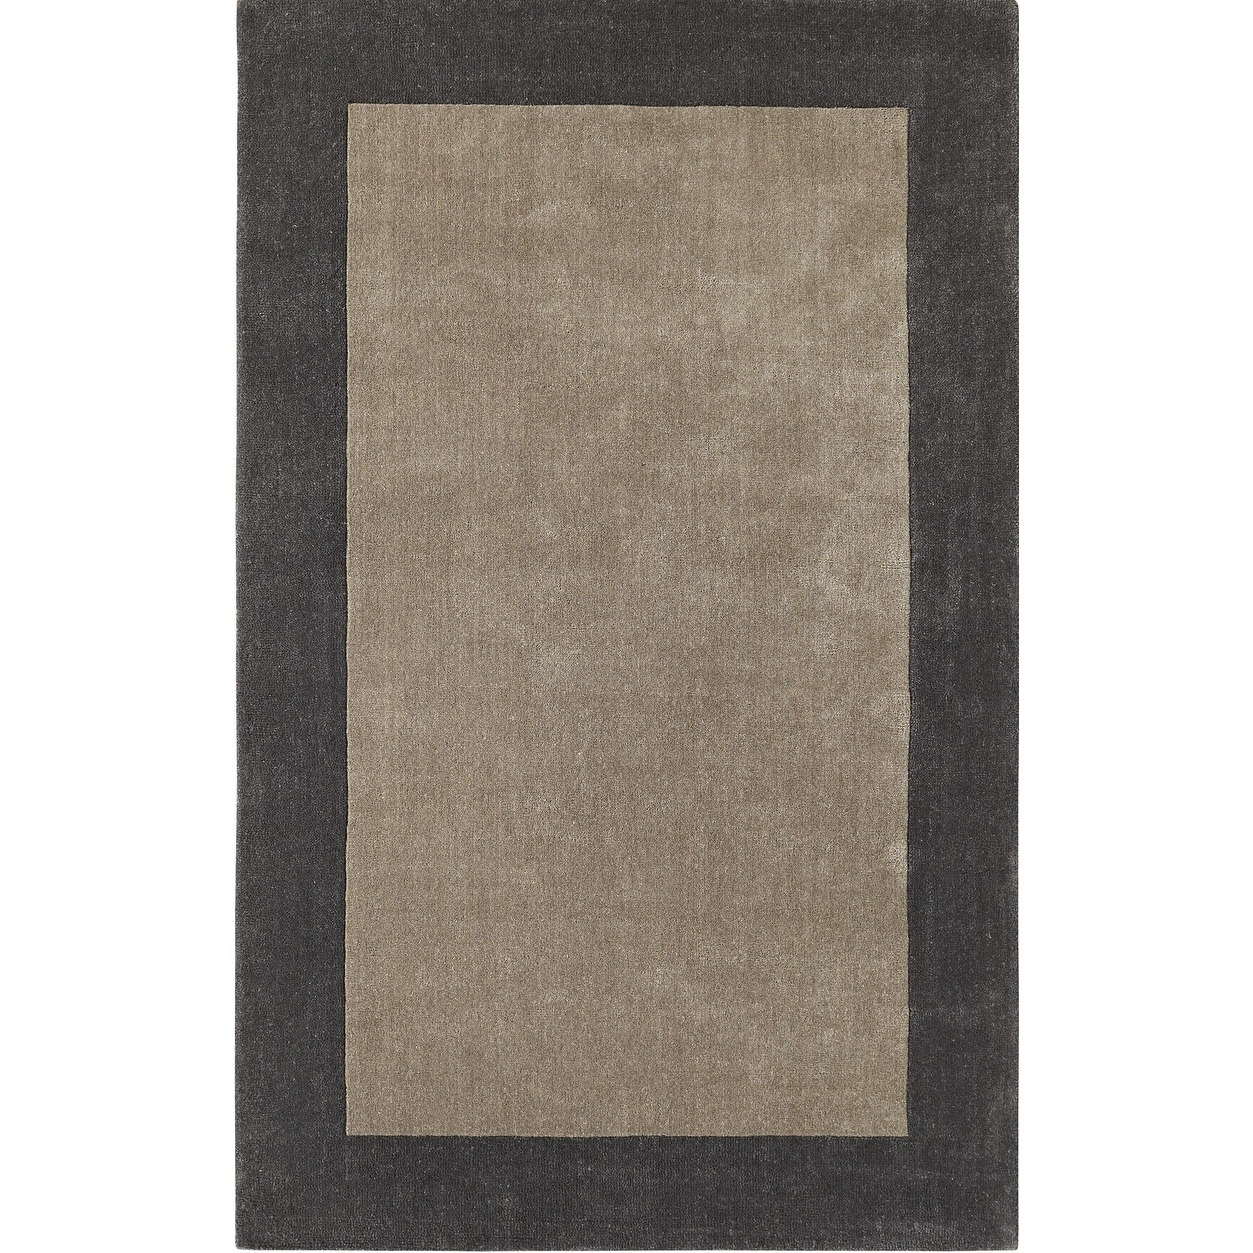 Dynamic Rugs Manhattan Silver/Charcoal rug (2x4)